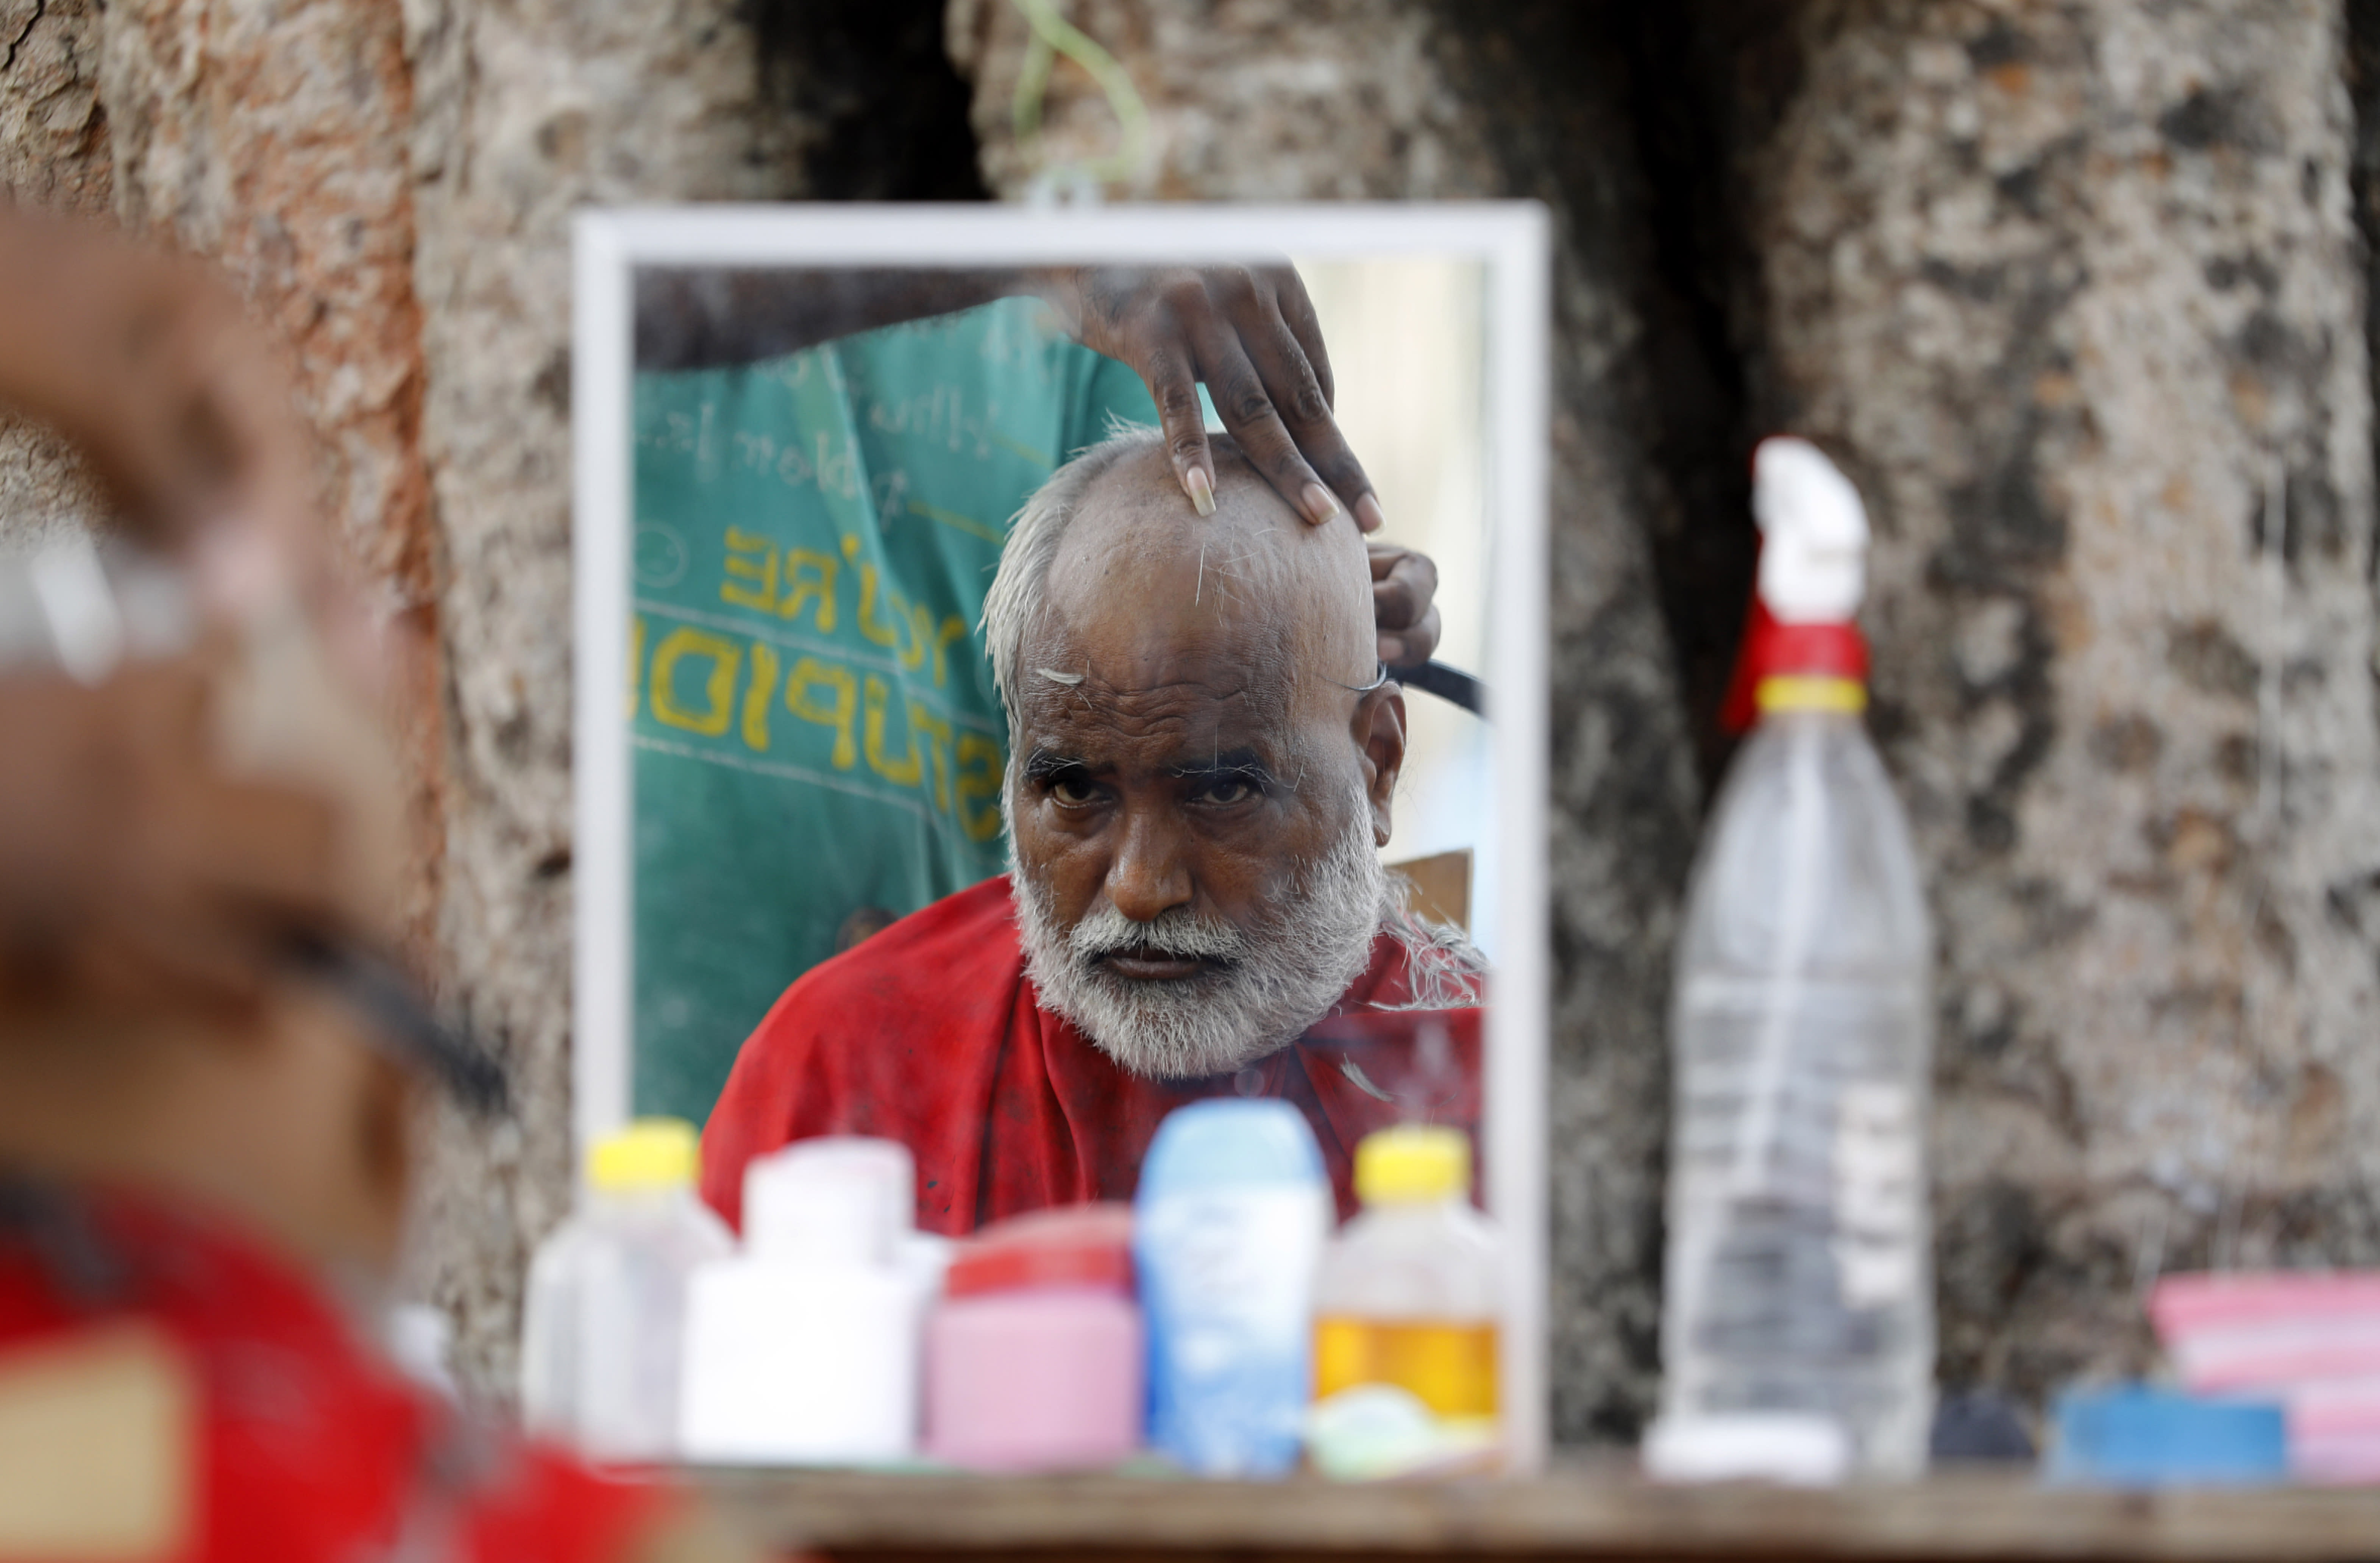 """A Hindu devotee gets a tonsure to perform """"Pind Daan"""" rituals at Sangam in Prayagraj in the northern Indian state of Uttar Pradesh India, Wednesday, Sept. 16, 2020. Pind Daan rituals are performed to bring peace and salvation to the souls of deceased ancestors. (AP Photo/Rajesh Kumar Singh)"""